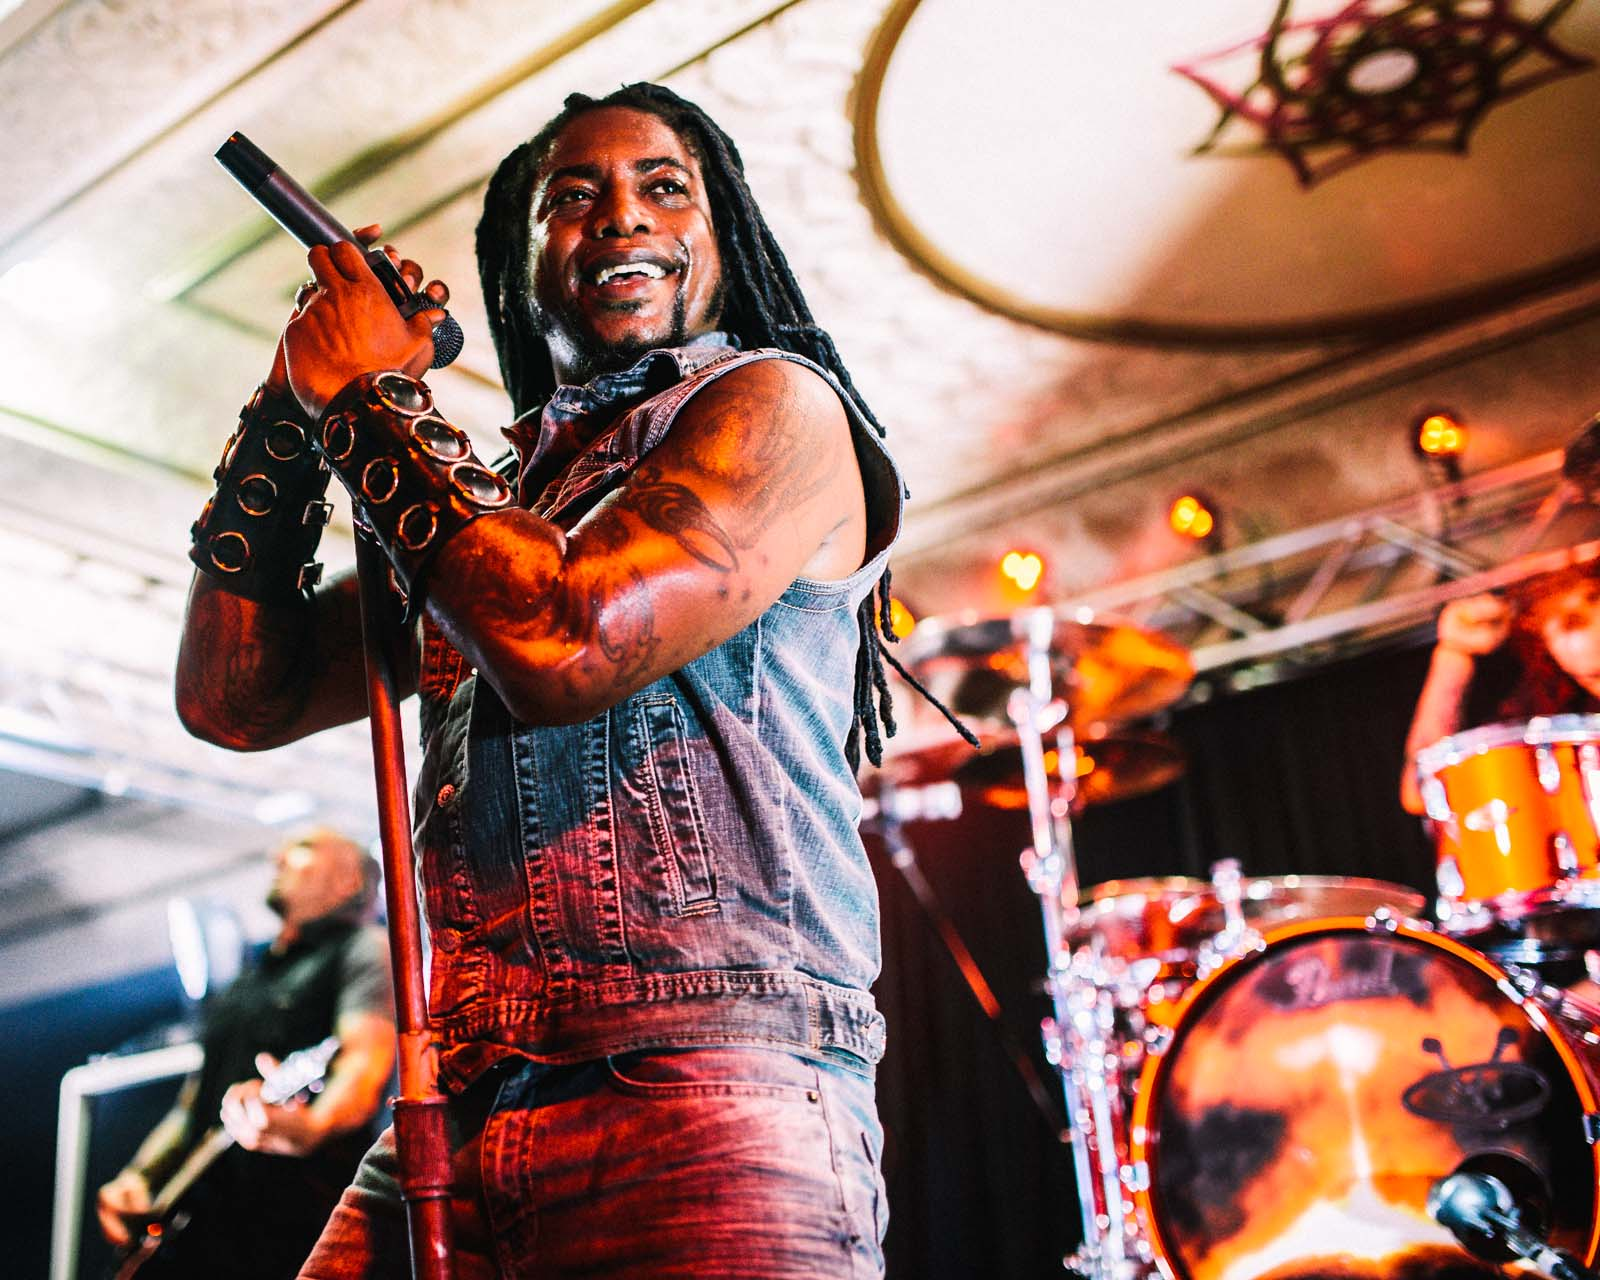 sevendust_live_deluxe_indianapolis_2013-33